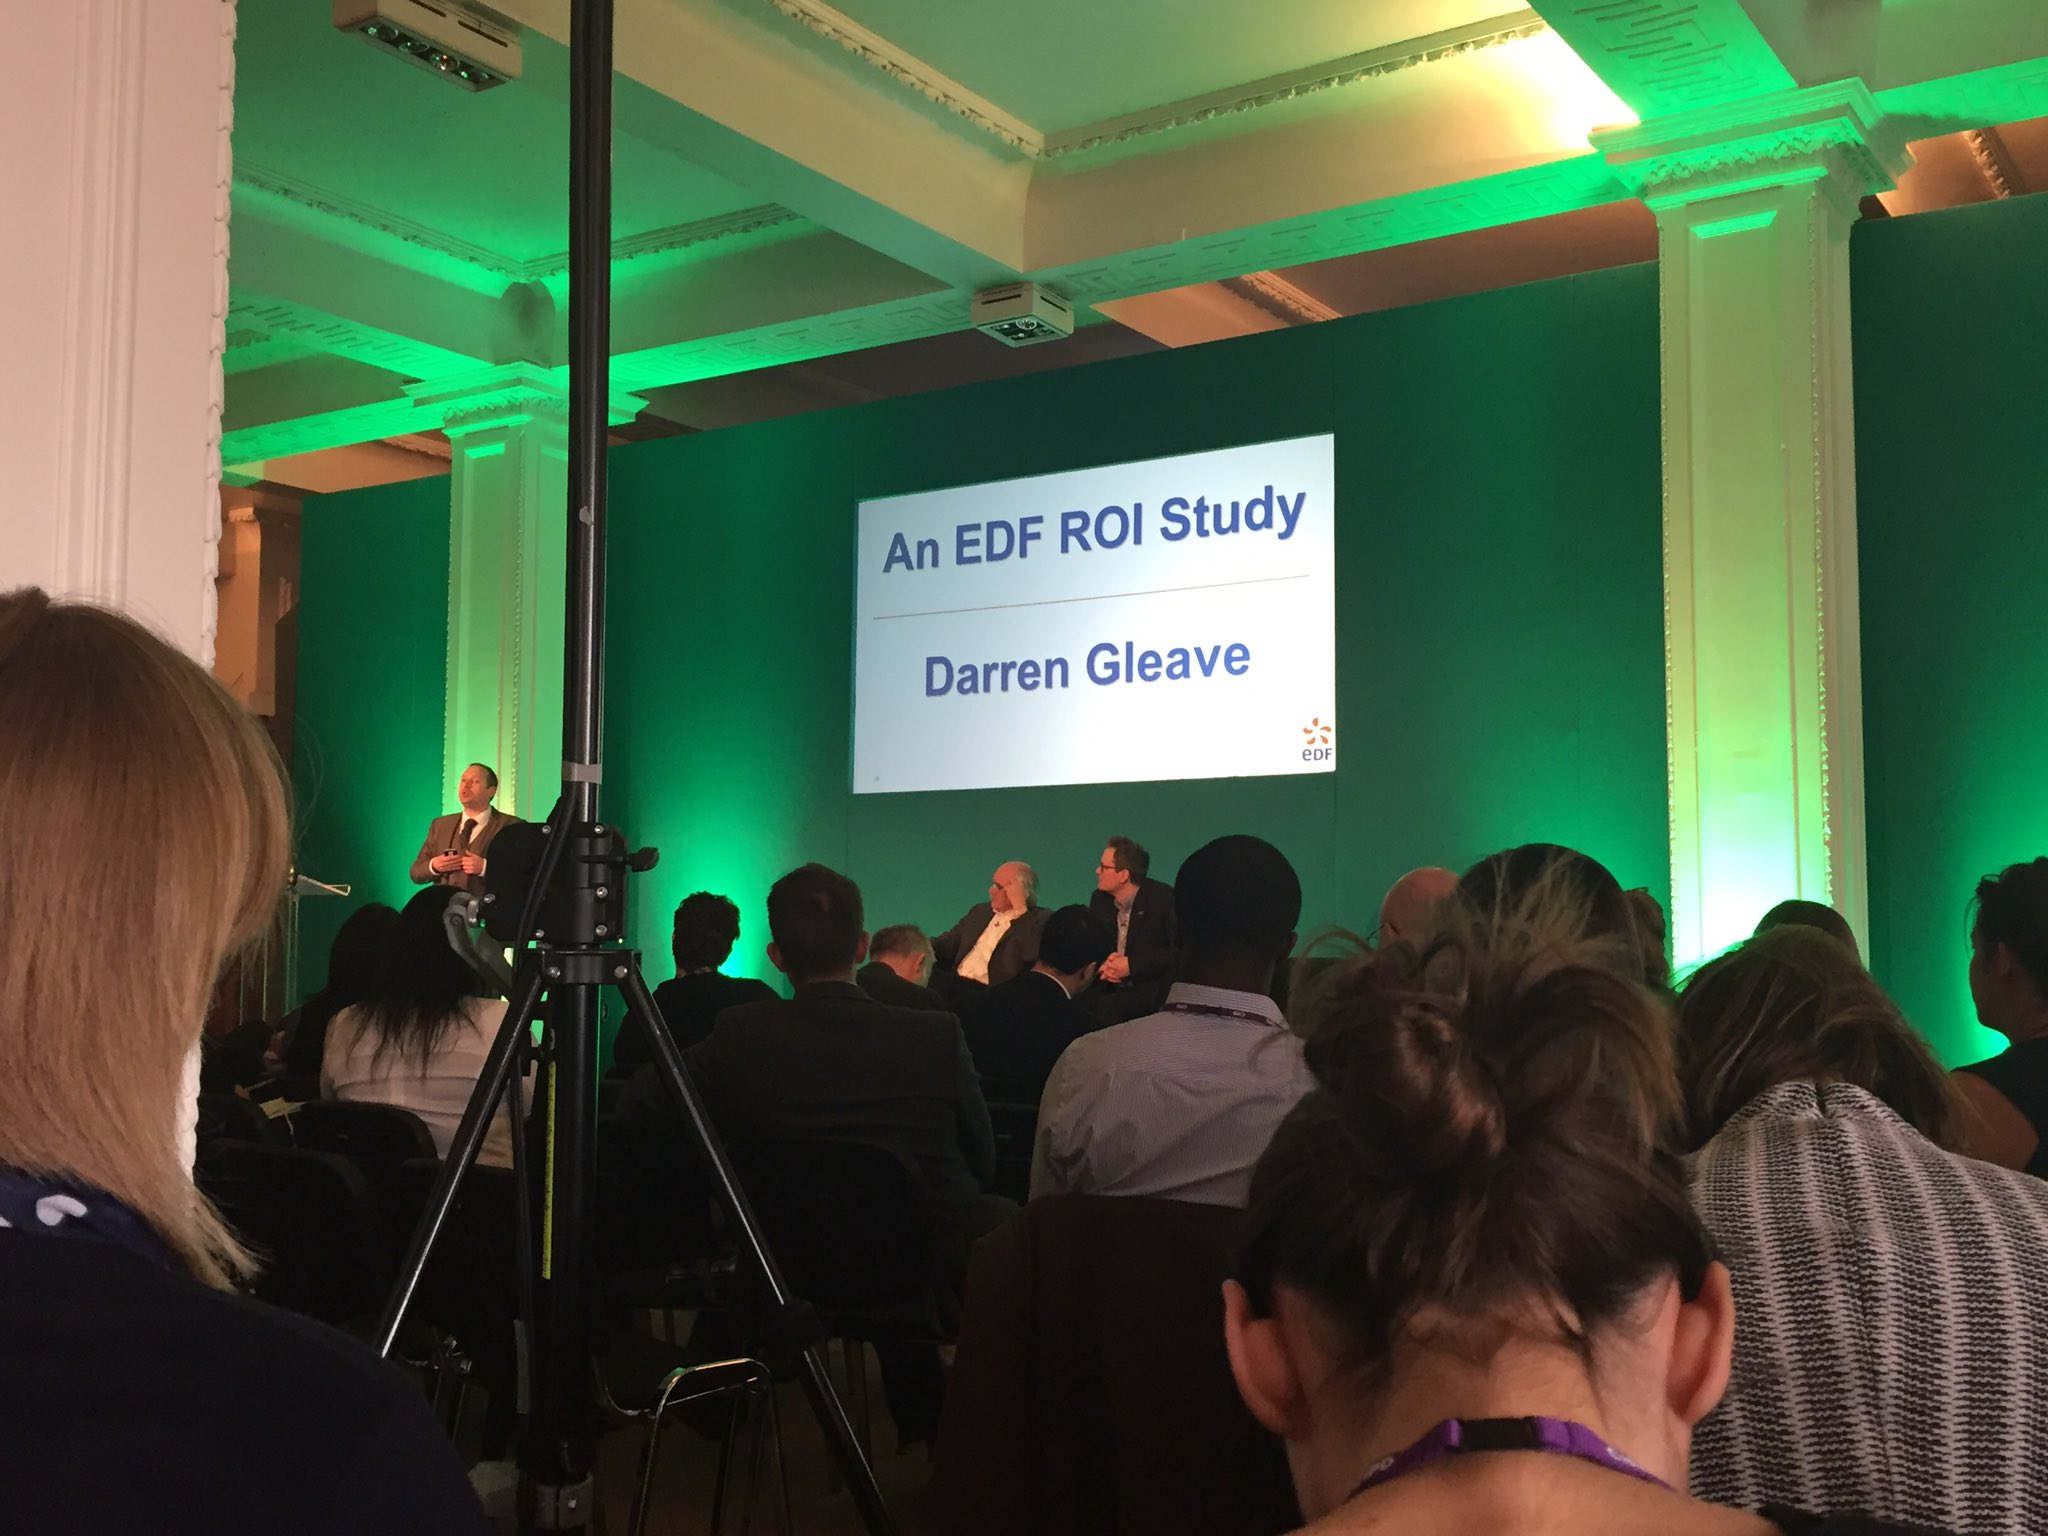 Now hearing a case study from EDF using the approach Jack just shared with us #CipdLDshow #f1 https://t.co/YF3fVmkenO